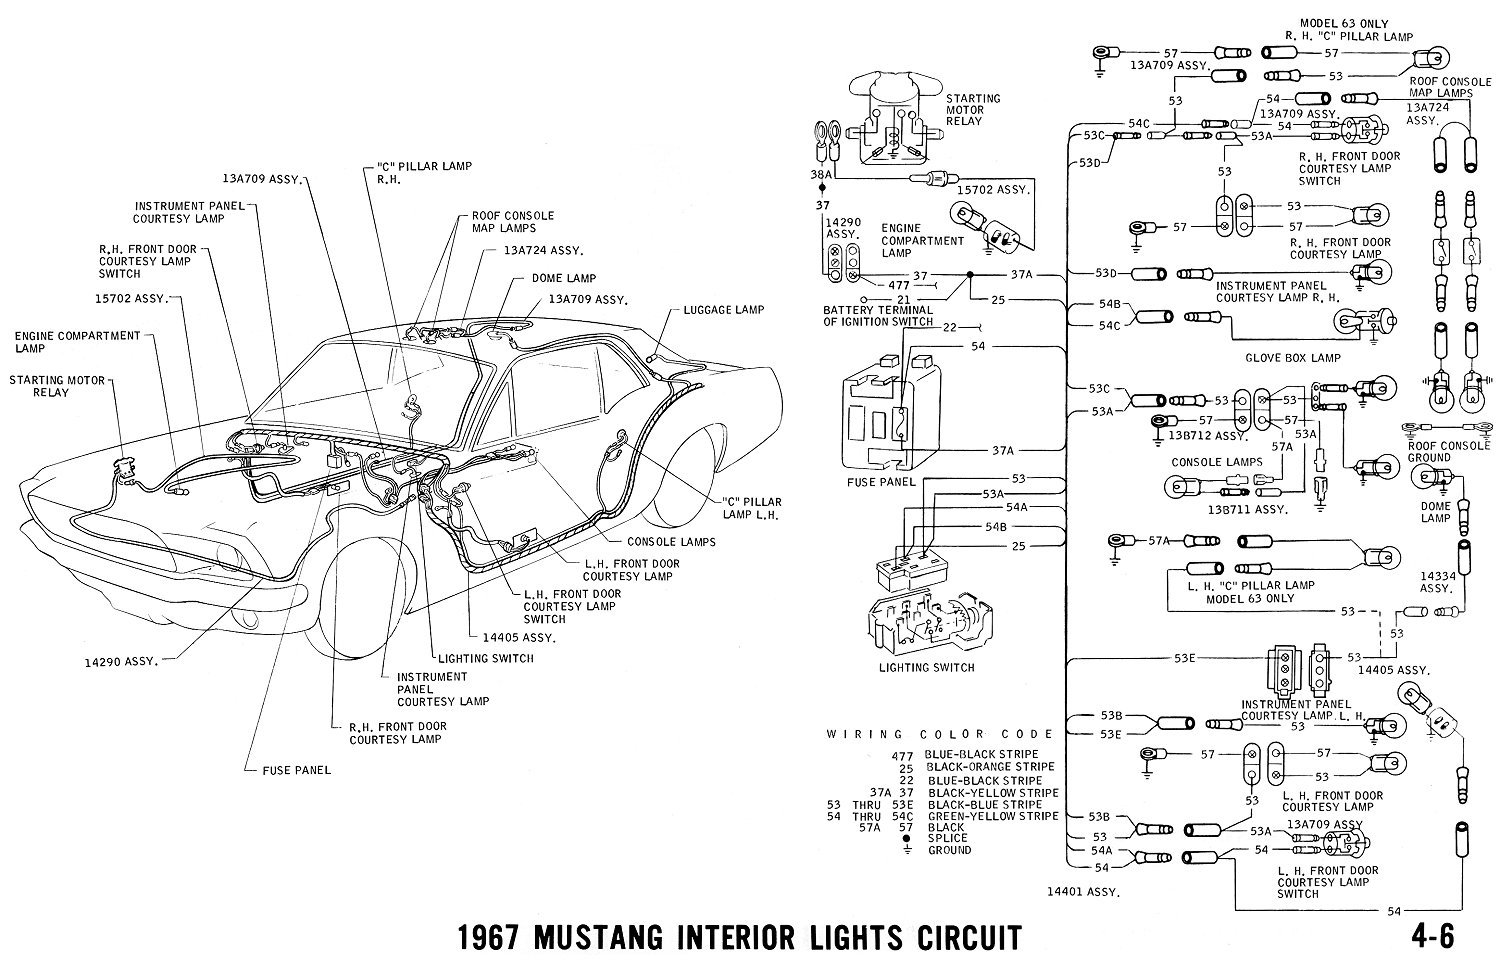 Mustang Wiring Diagrams Simple Guide About Diagram 2011 68 Underdash Looking At The 2015